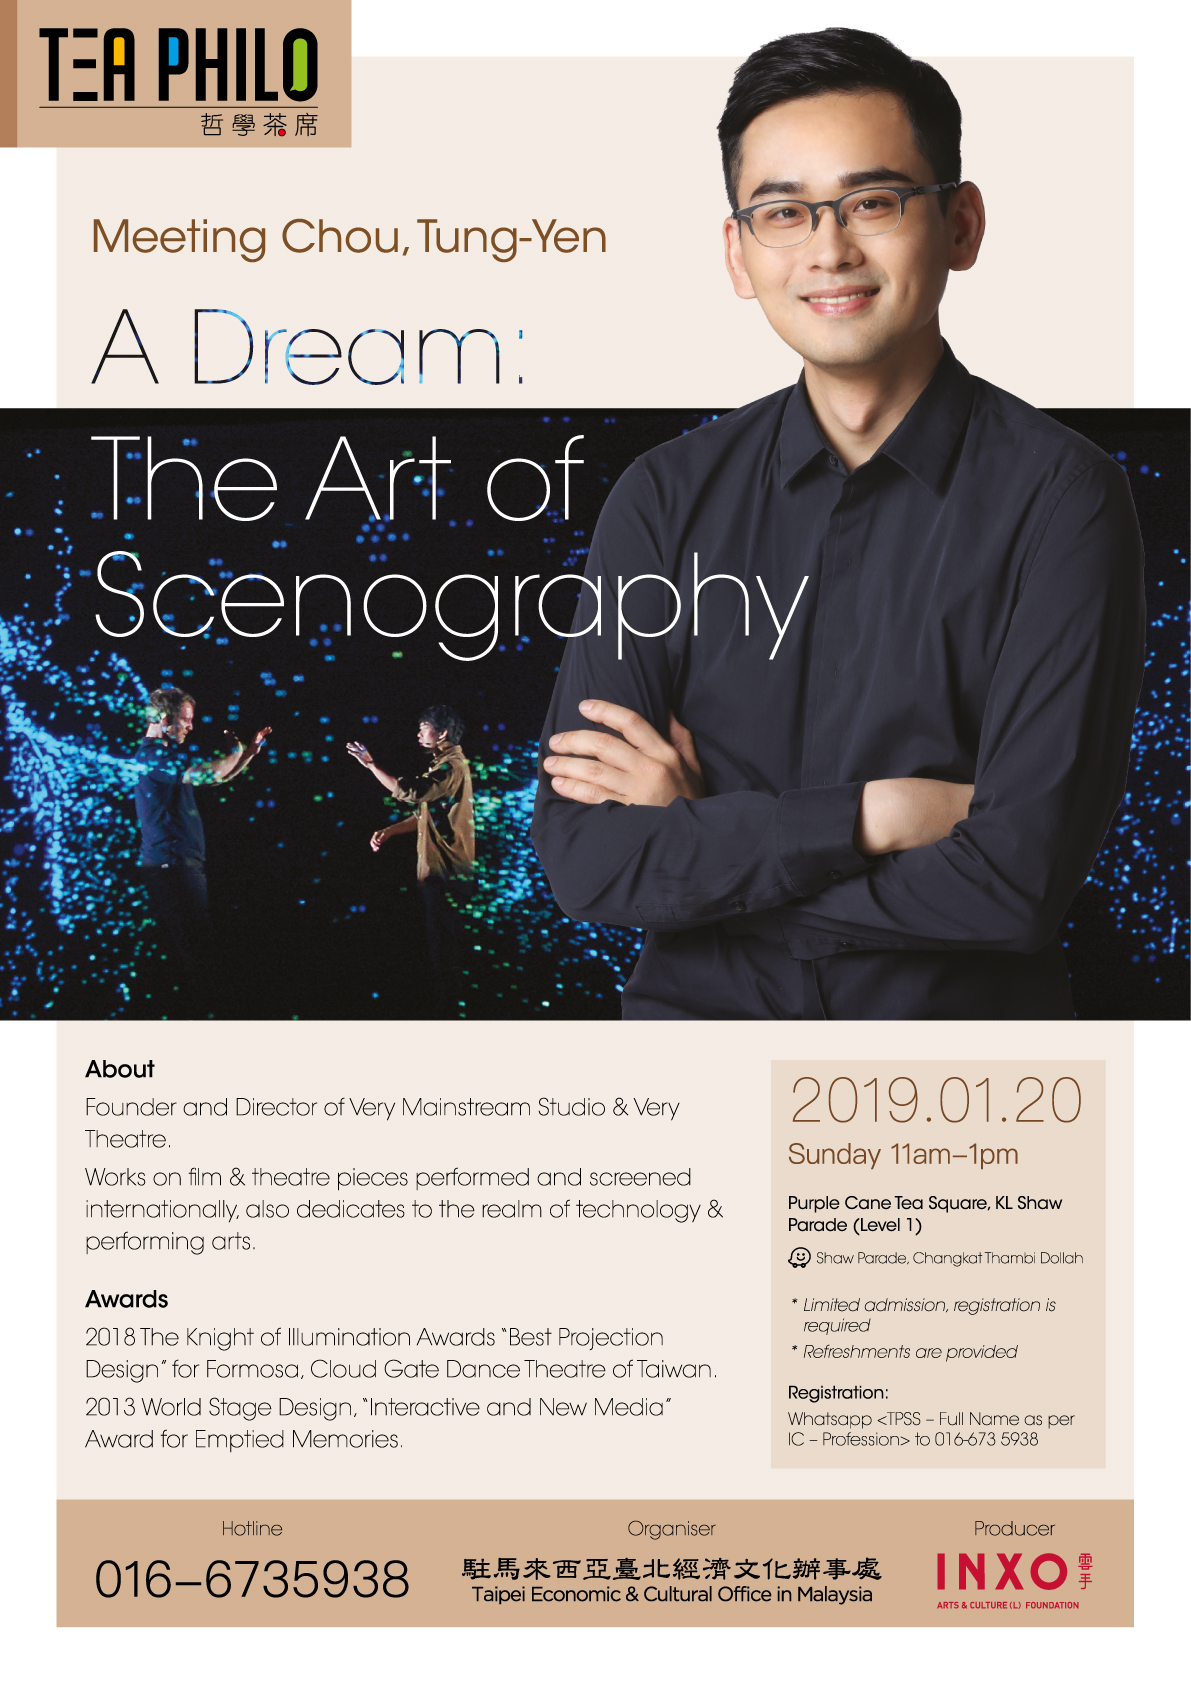 Tea Philo series in Malaysia kicks off with scenography expert